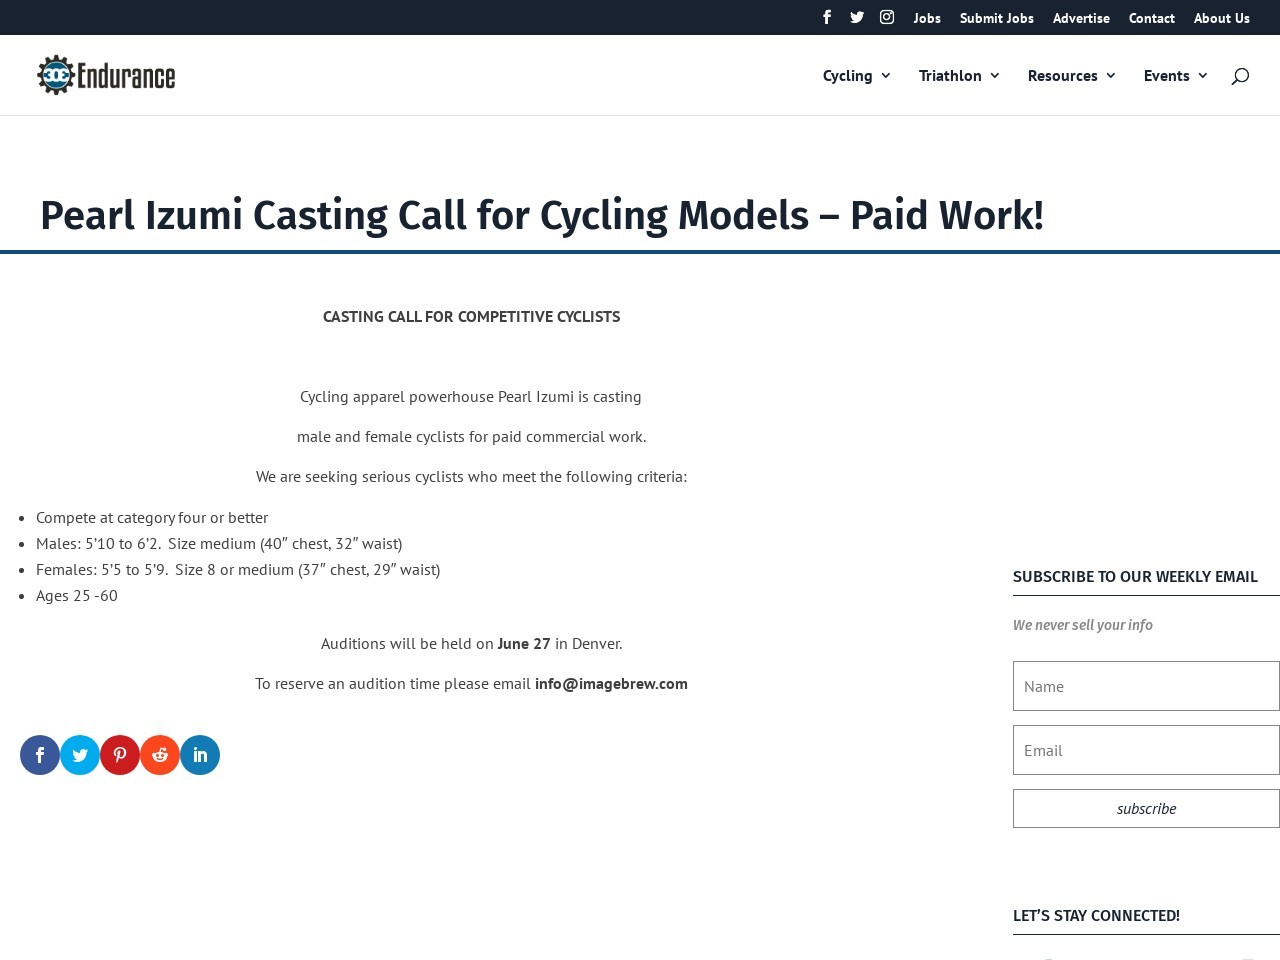 Pearl Izumi Casting Call for Cycling Models – Paid Work!